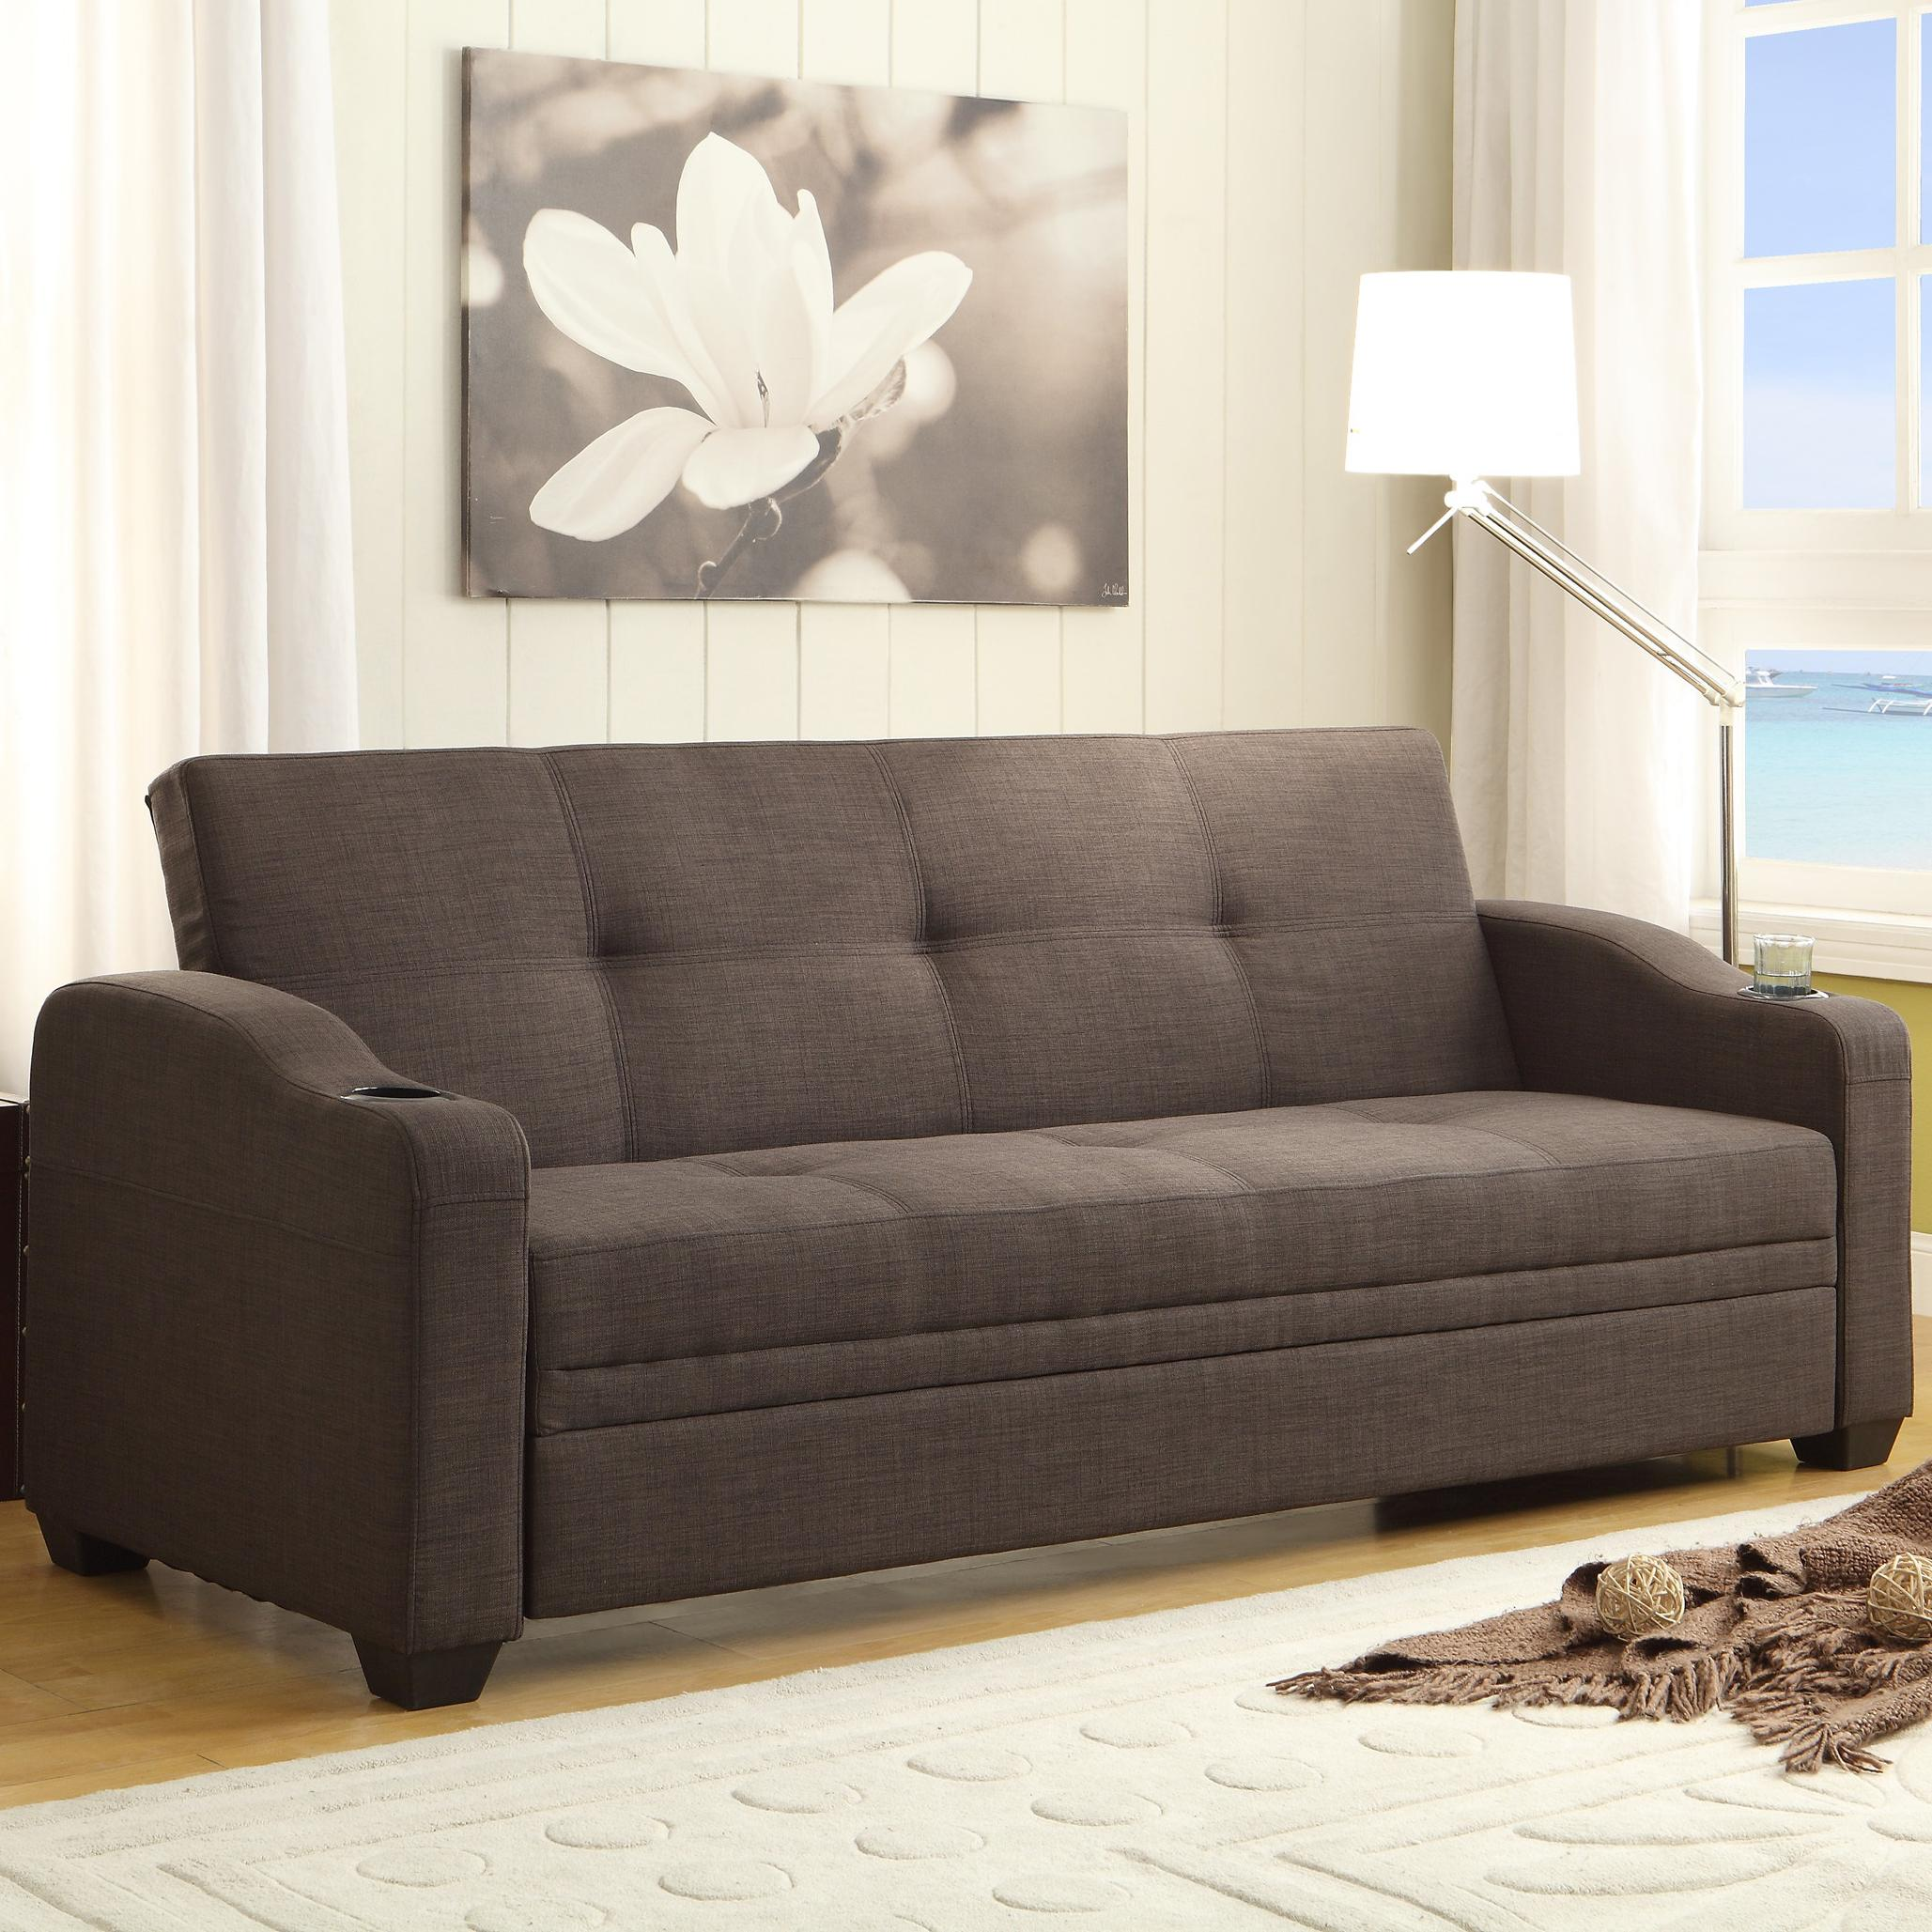 Caffery Click Clack by Homelegance at Value City Furniture